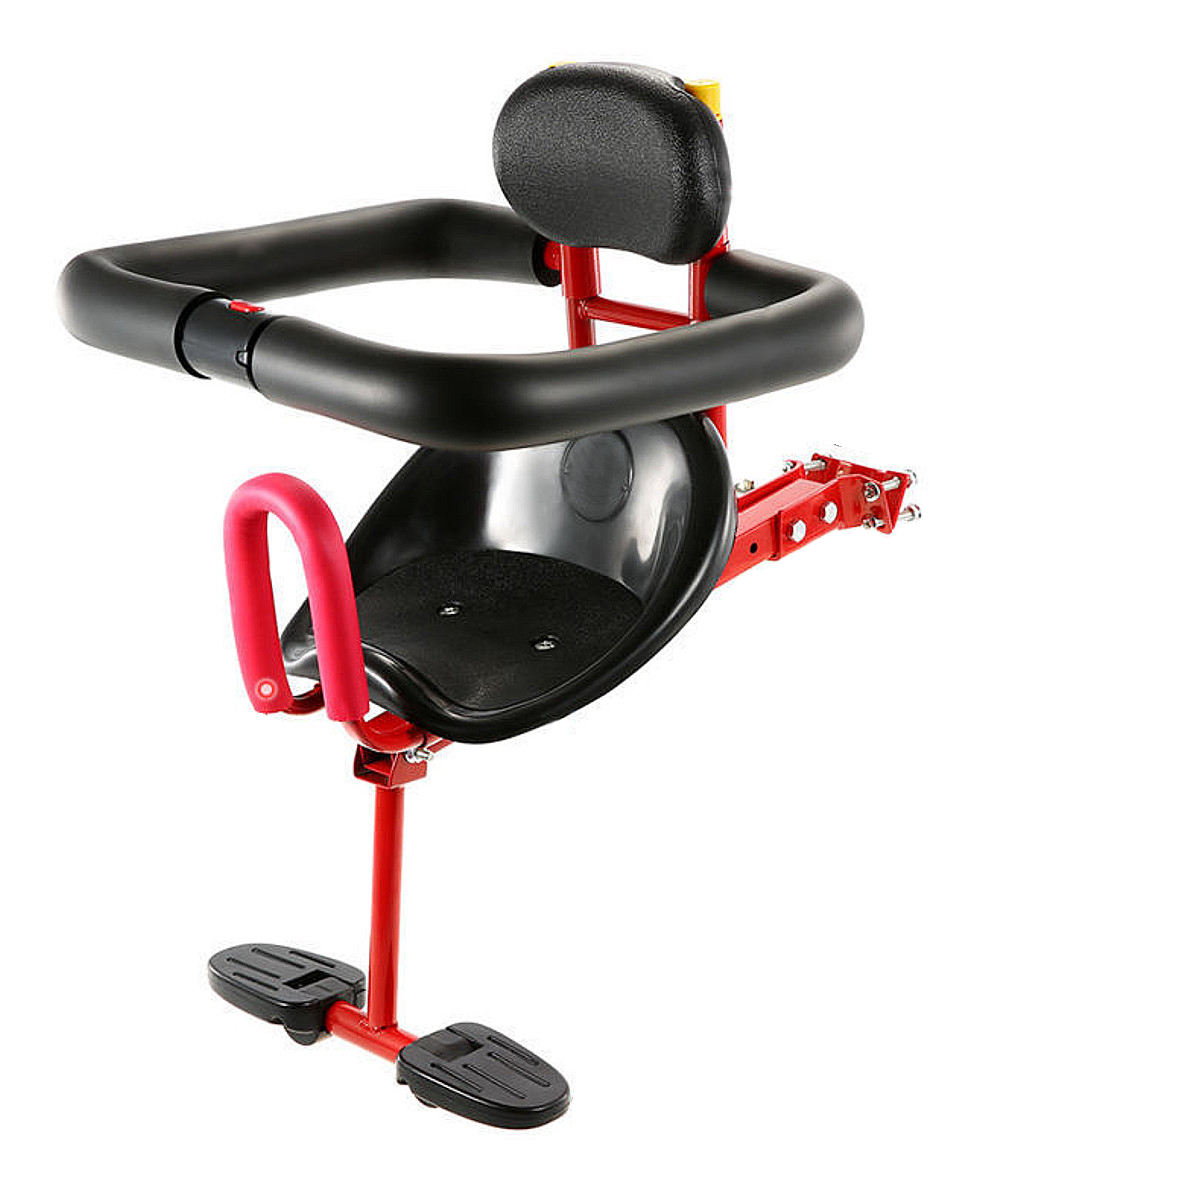 Bicycle Baby Seat For Kids Child Safety Seat Carrier Front Seat Saddle Cushion With Back Rest Foot Pedals Bike Child Seat